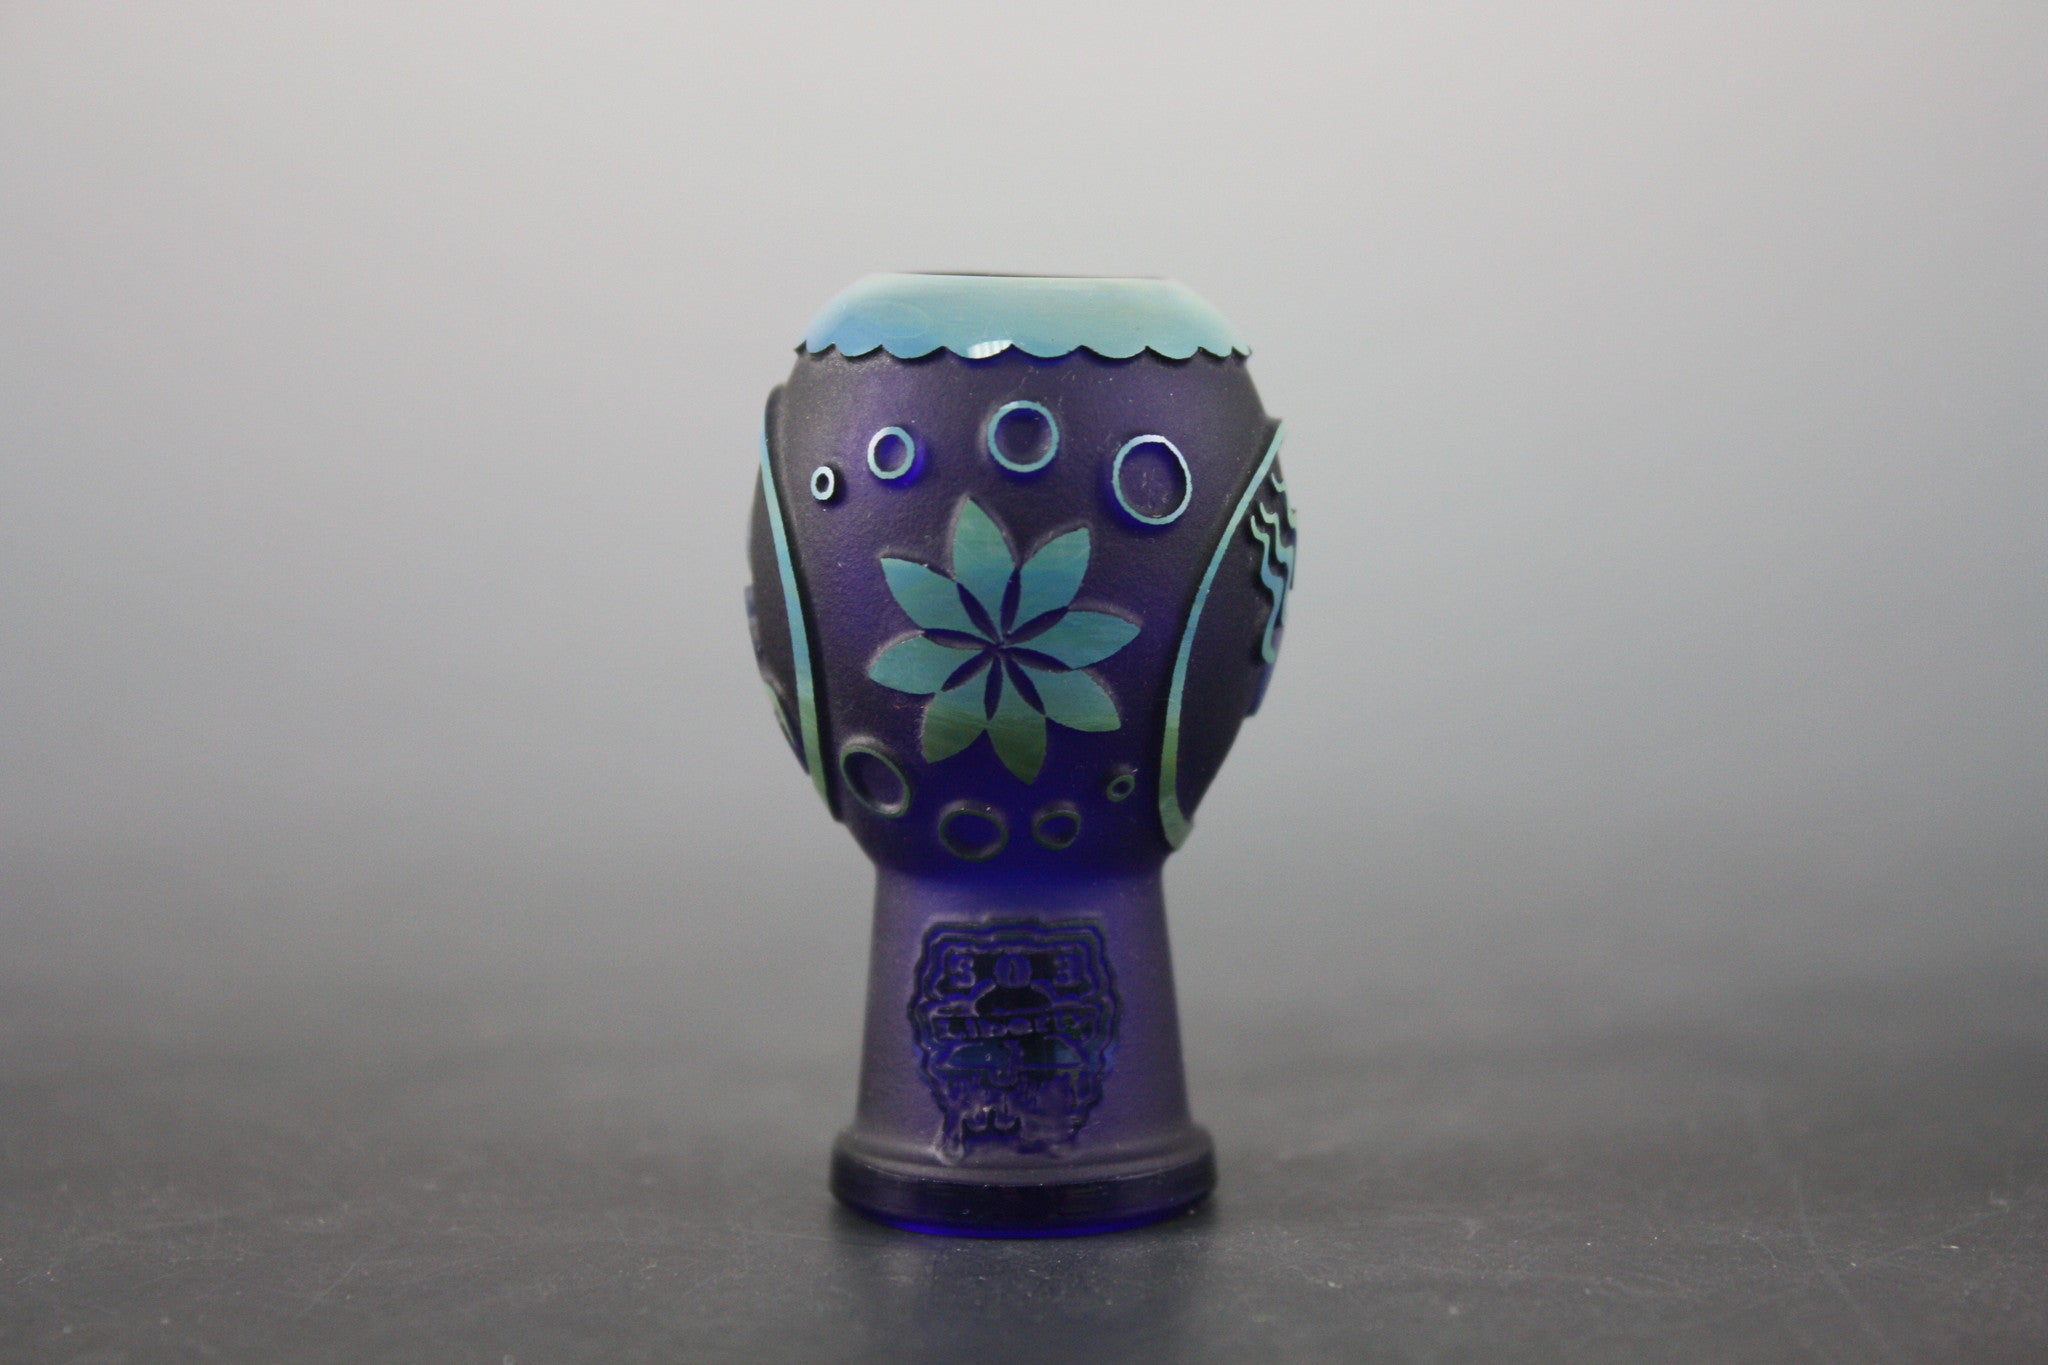 Liberty Glass 14mm dome 3 - Headdy Glass